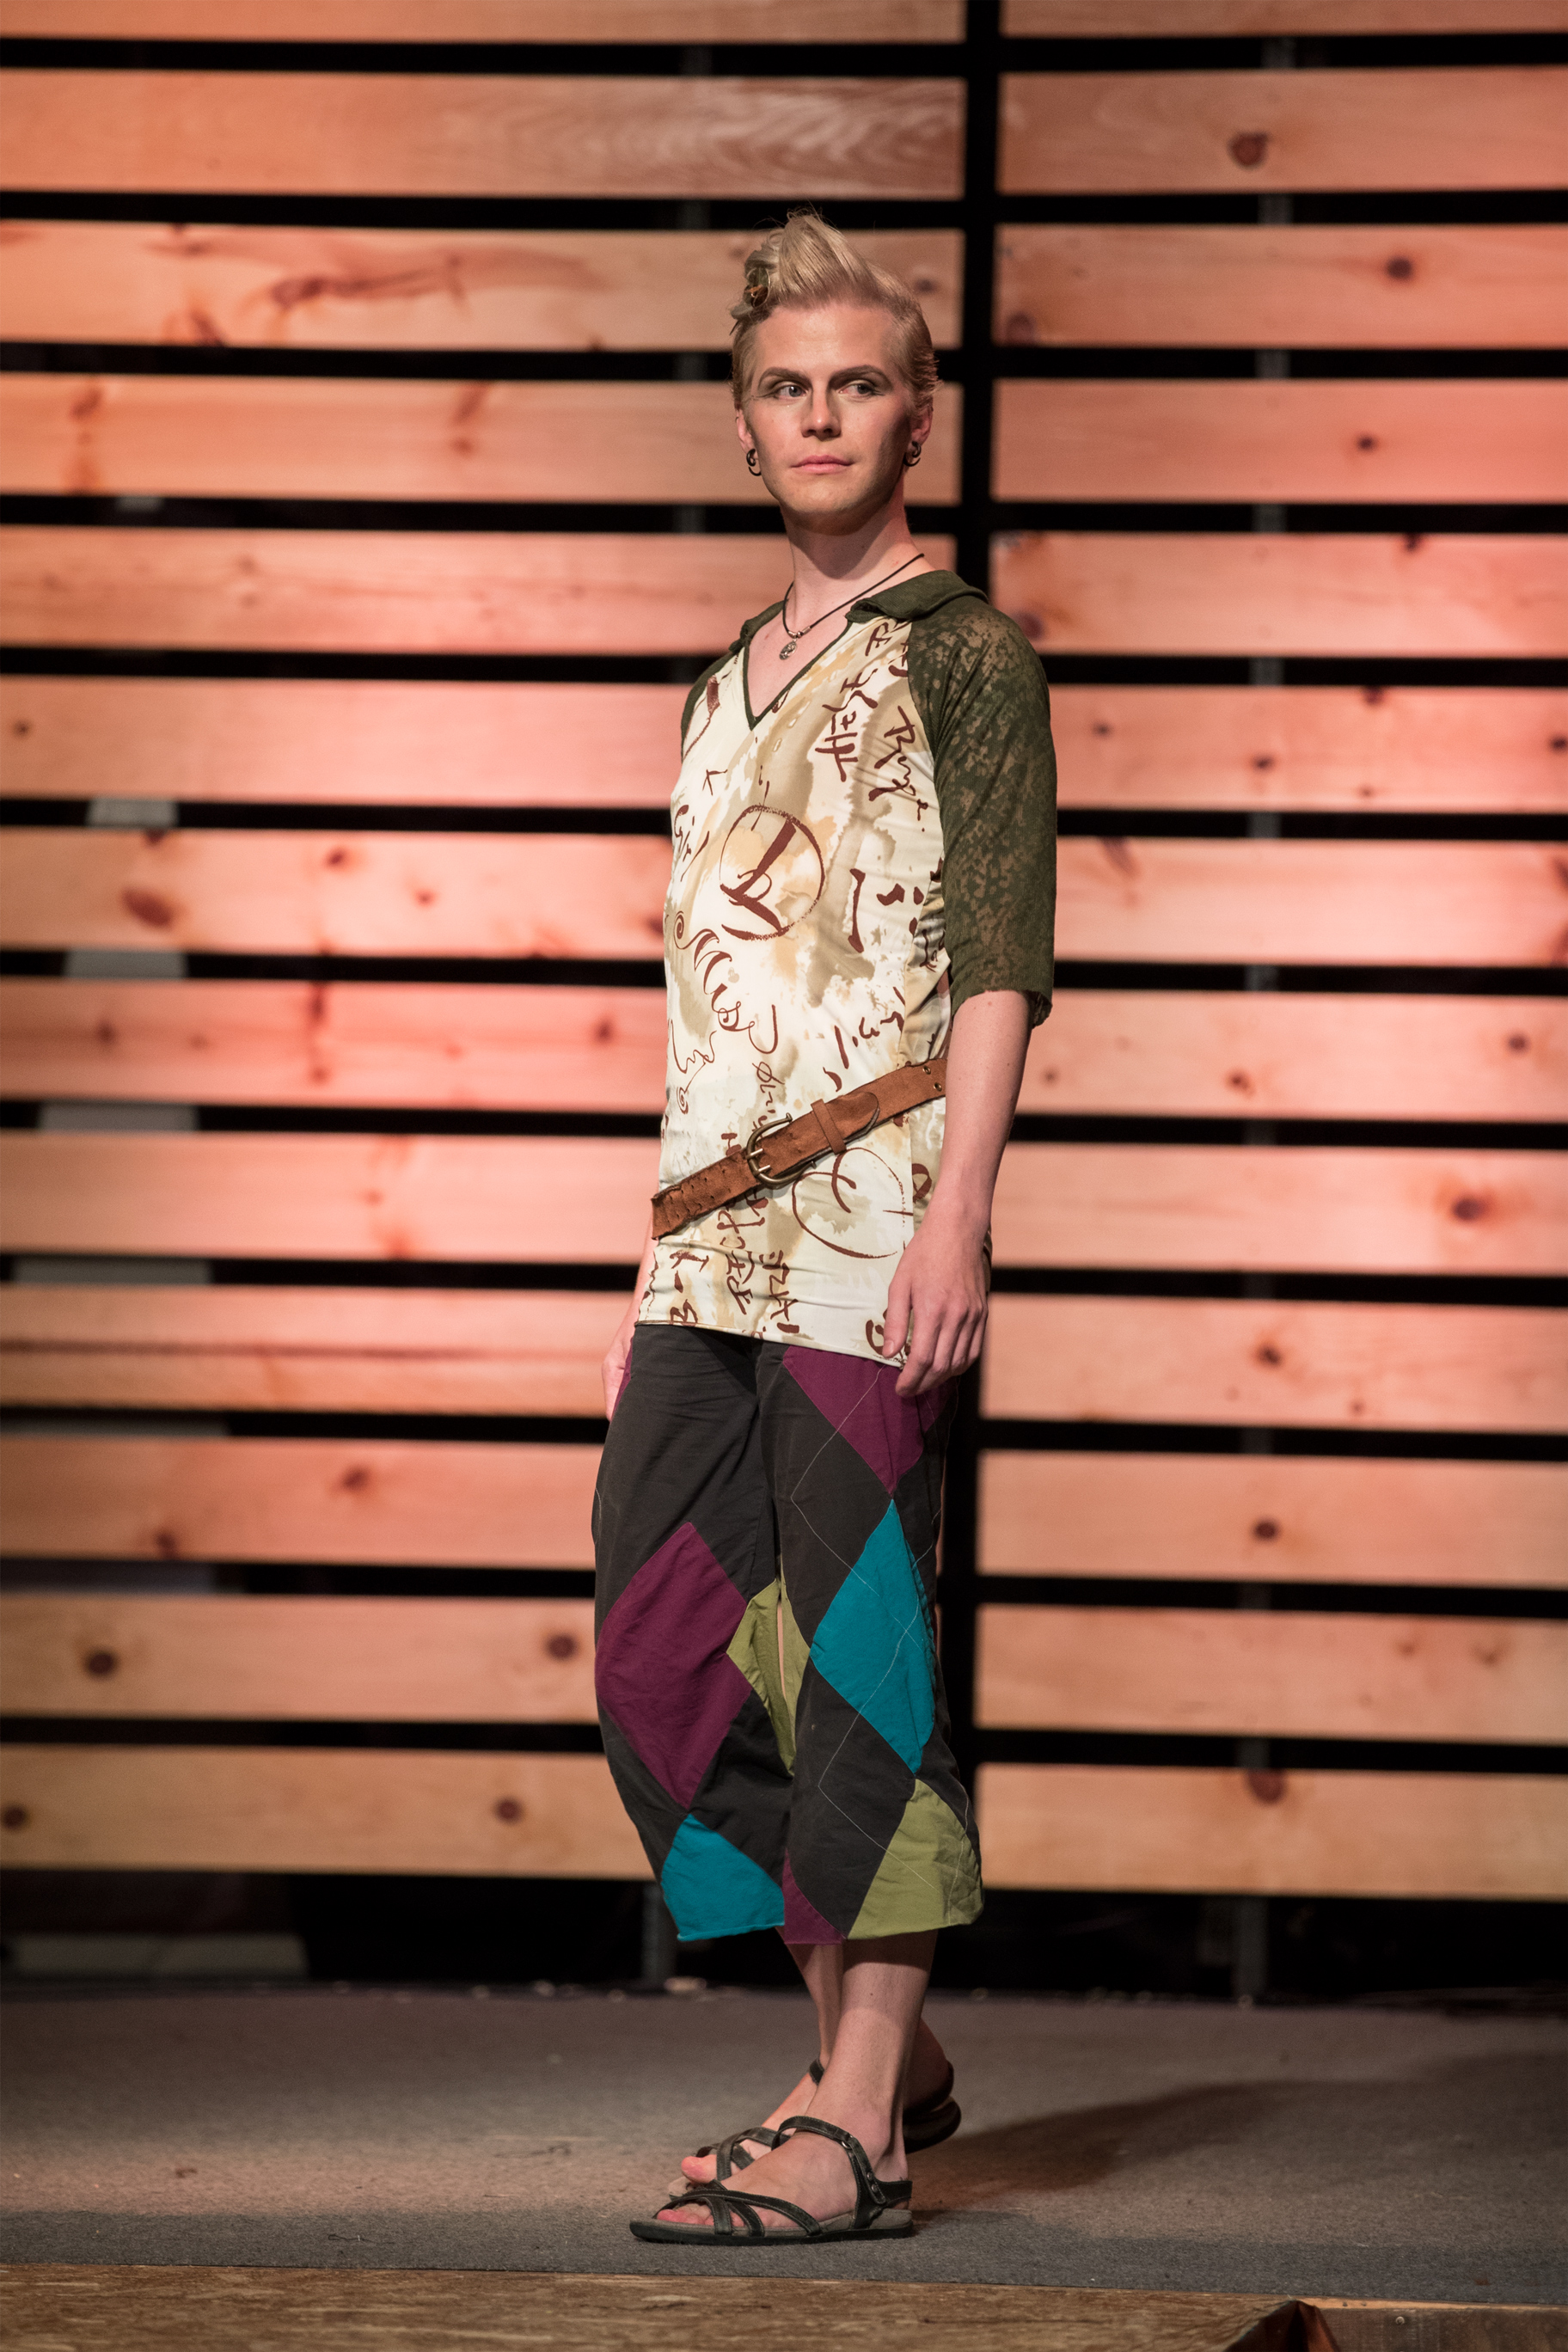 Mission Wear Upcycled Patchwork Fashion Show - 051.jpg